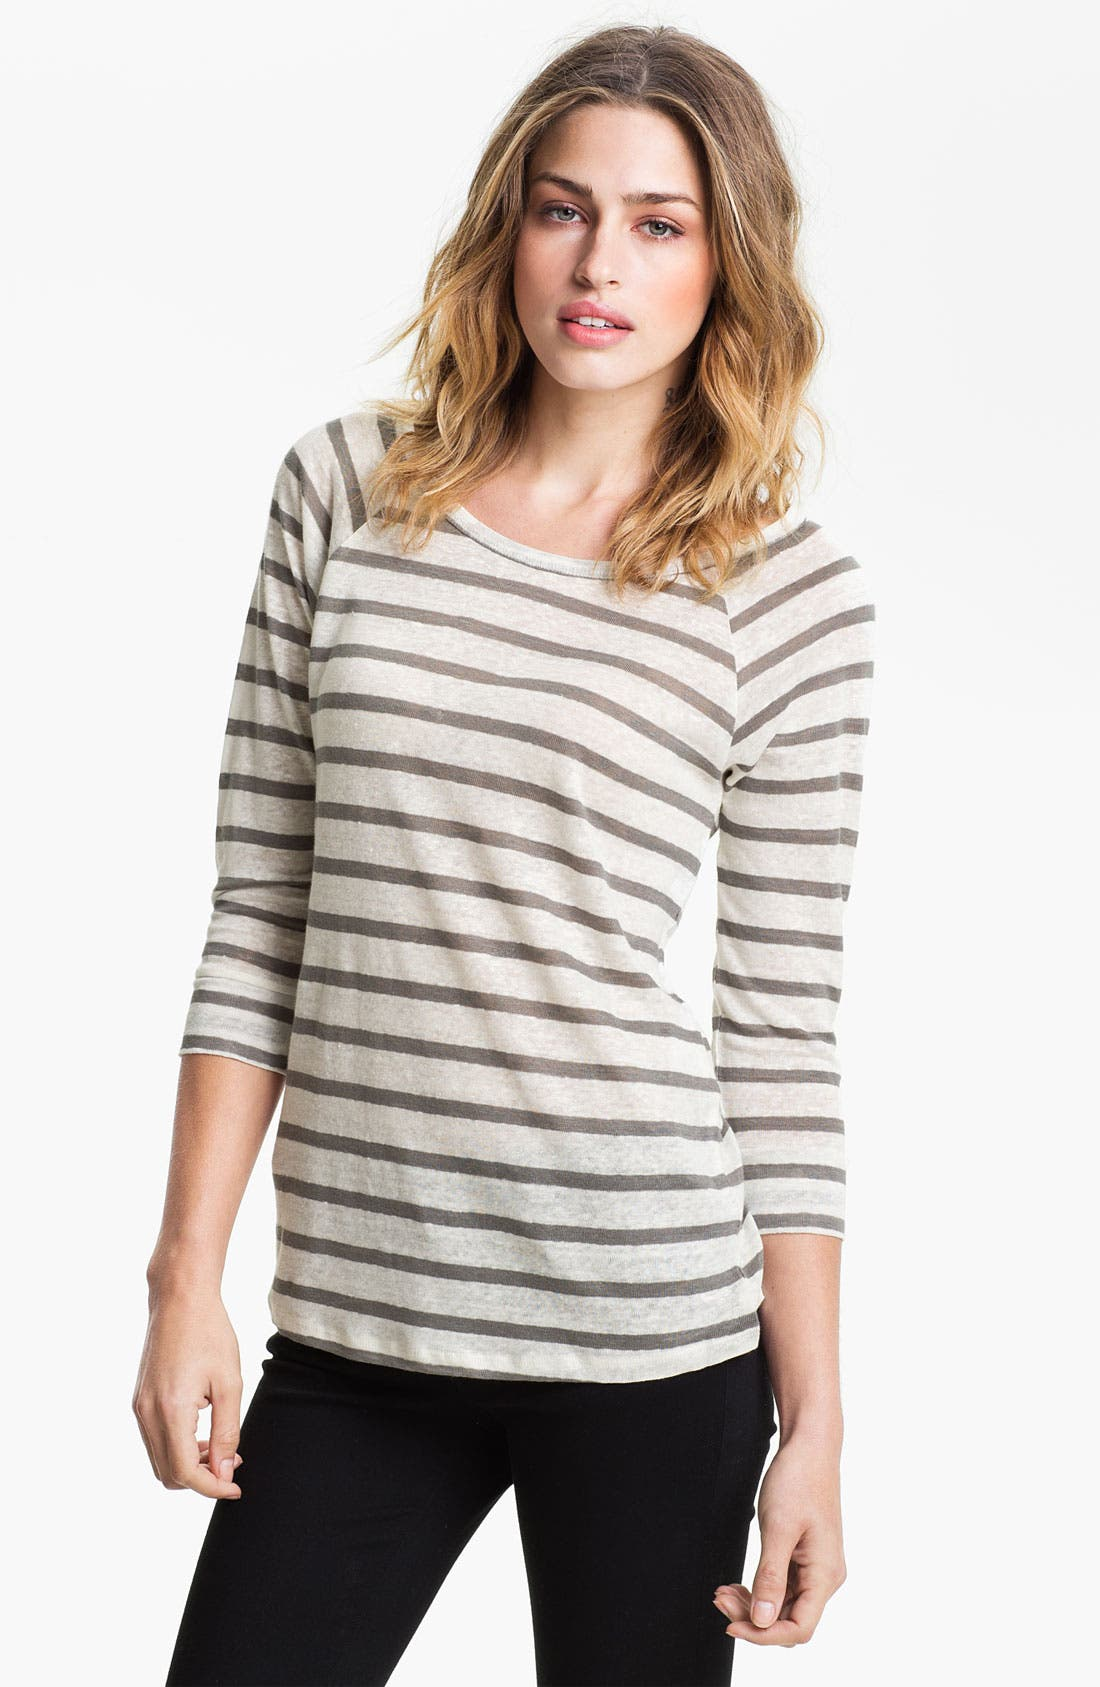 Alternate Image 1 Selected - Joie 'Alpine' Stripe Linen Top